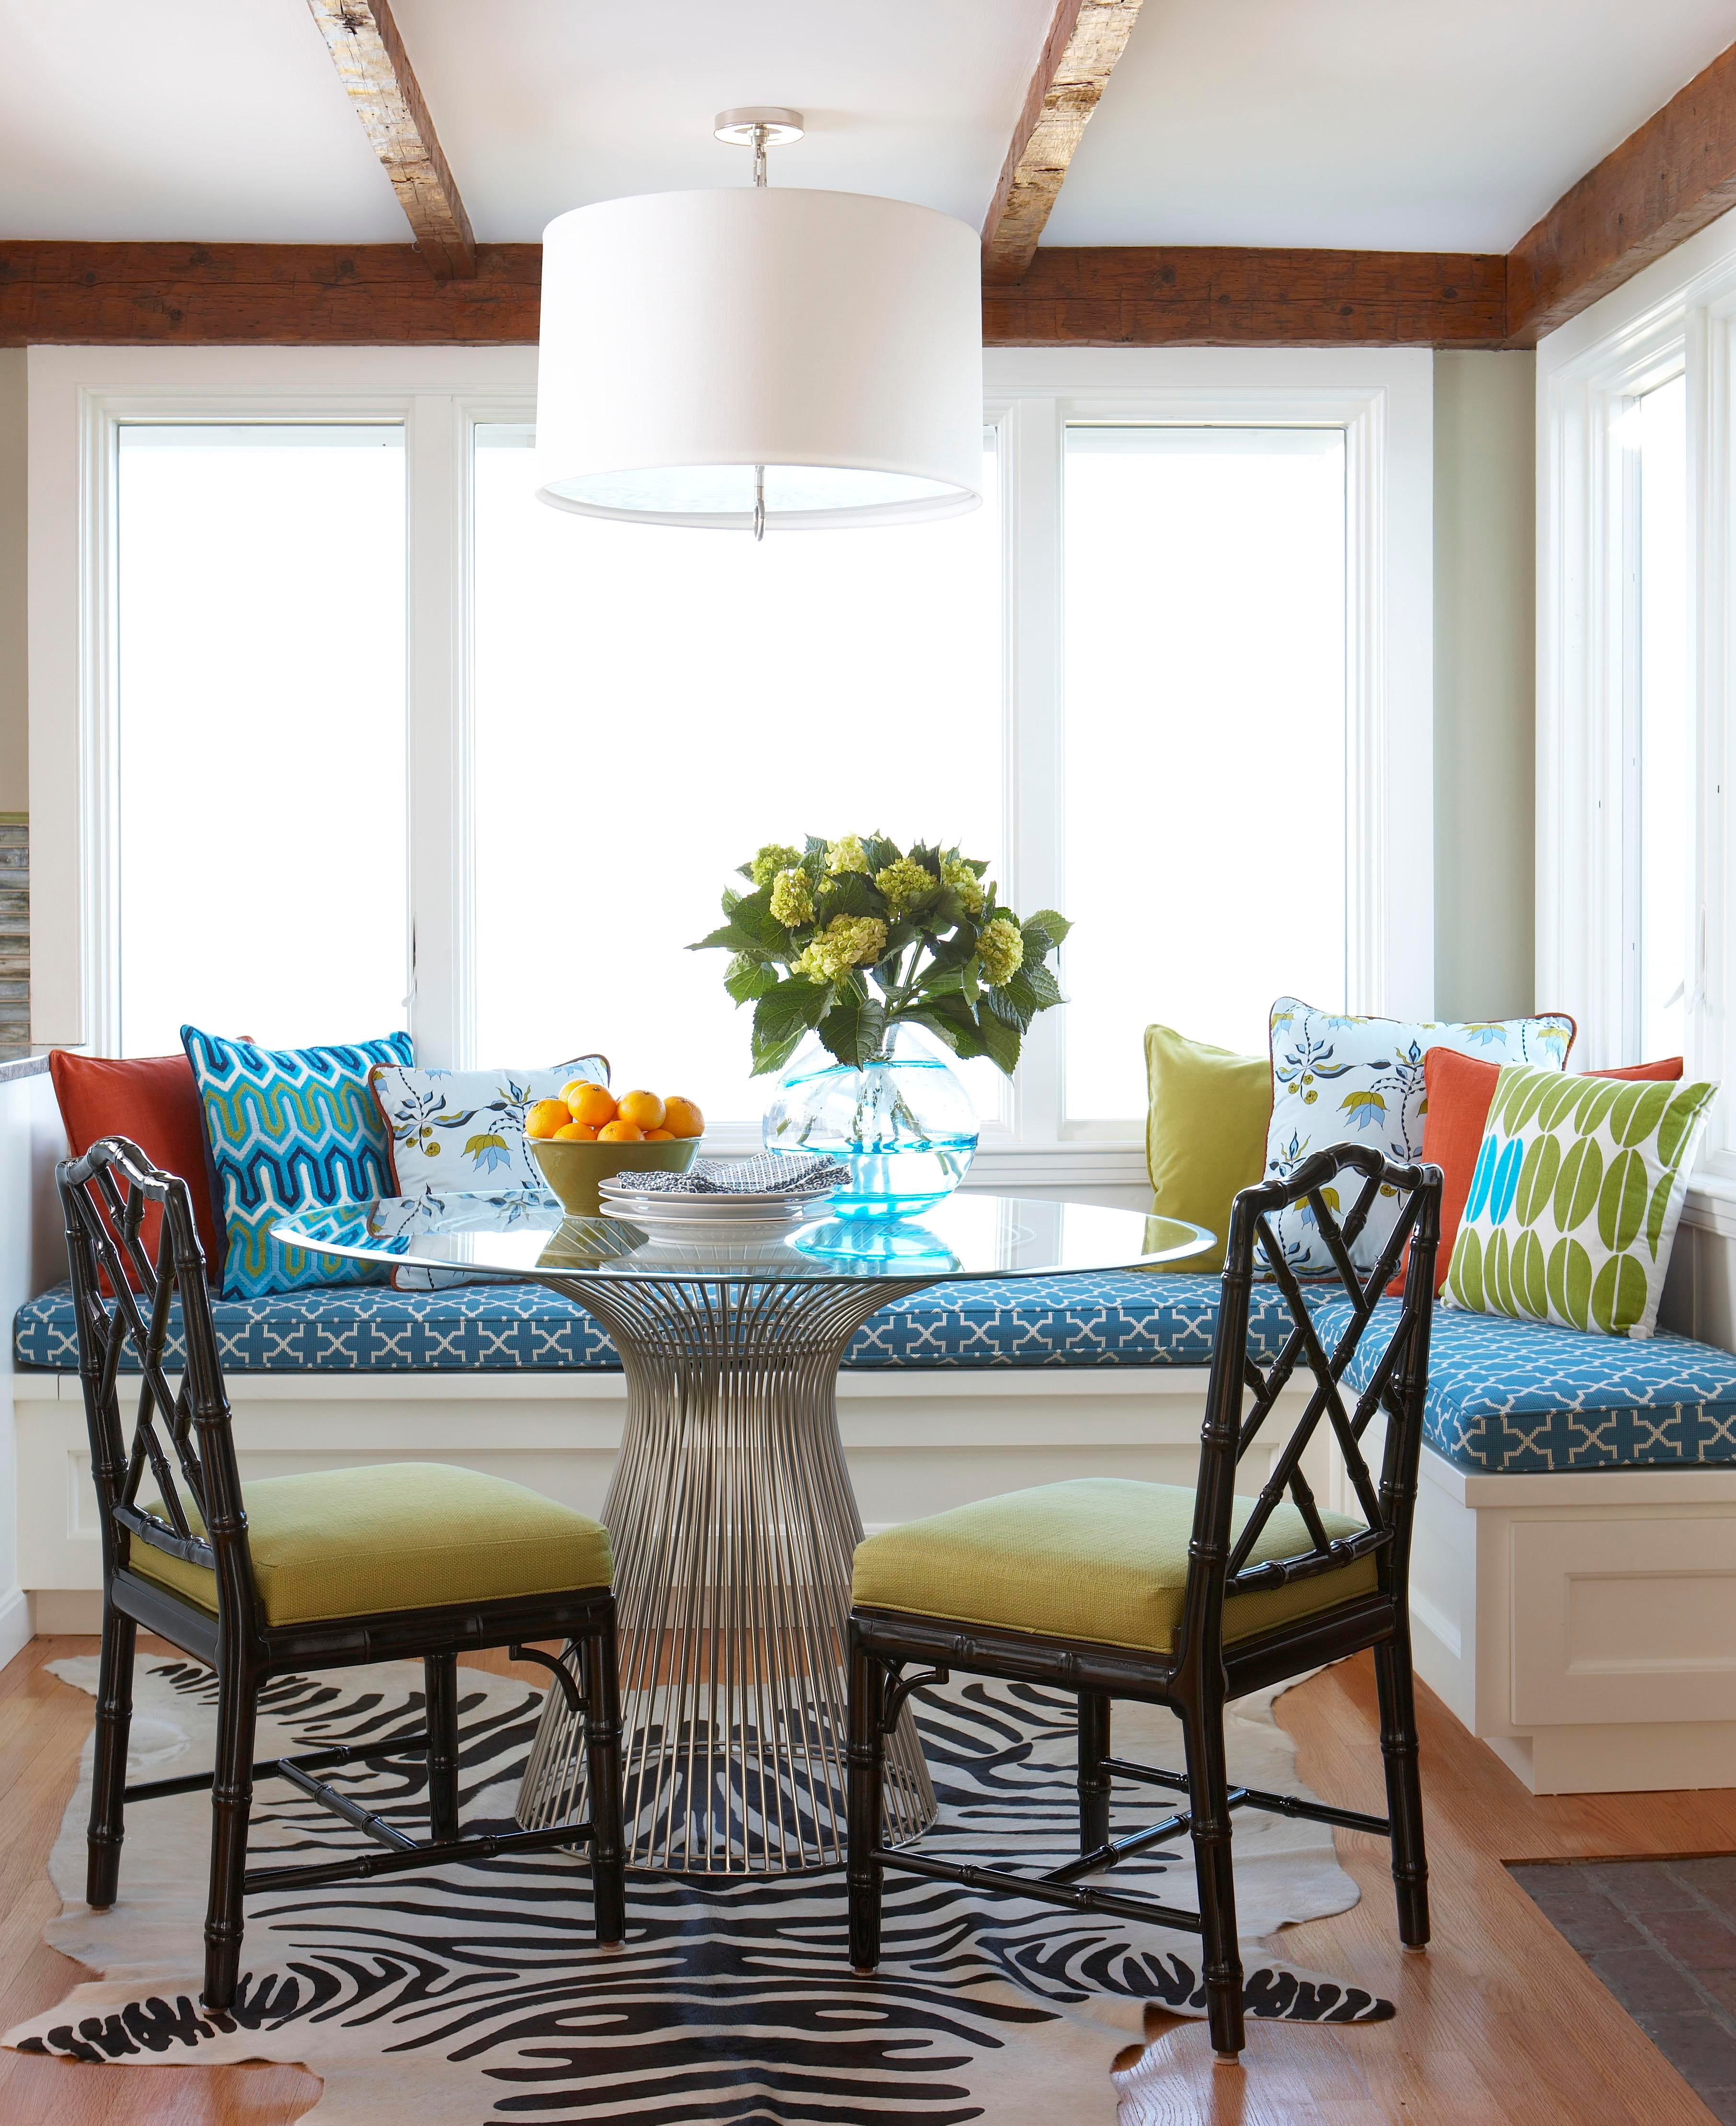 Coastal Cohasset Living Dining MidCenturyModern Cottage Modern Eclectic  Coastal Transitional By Rachel Reider Interiors